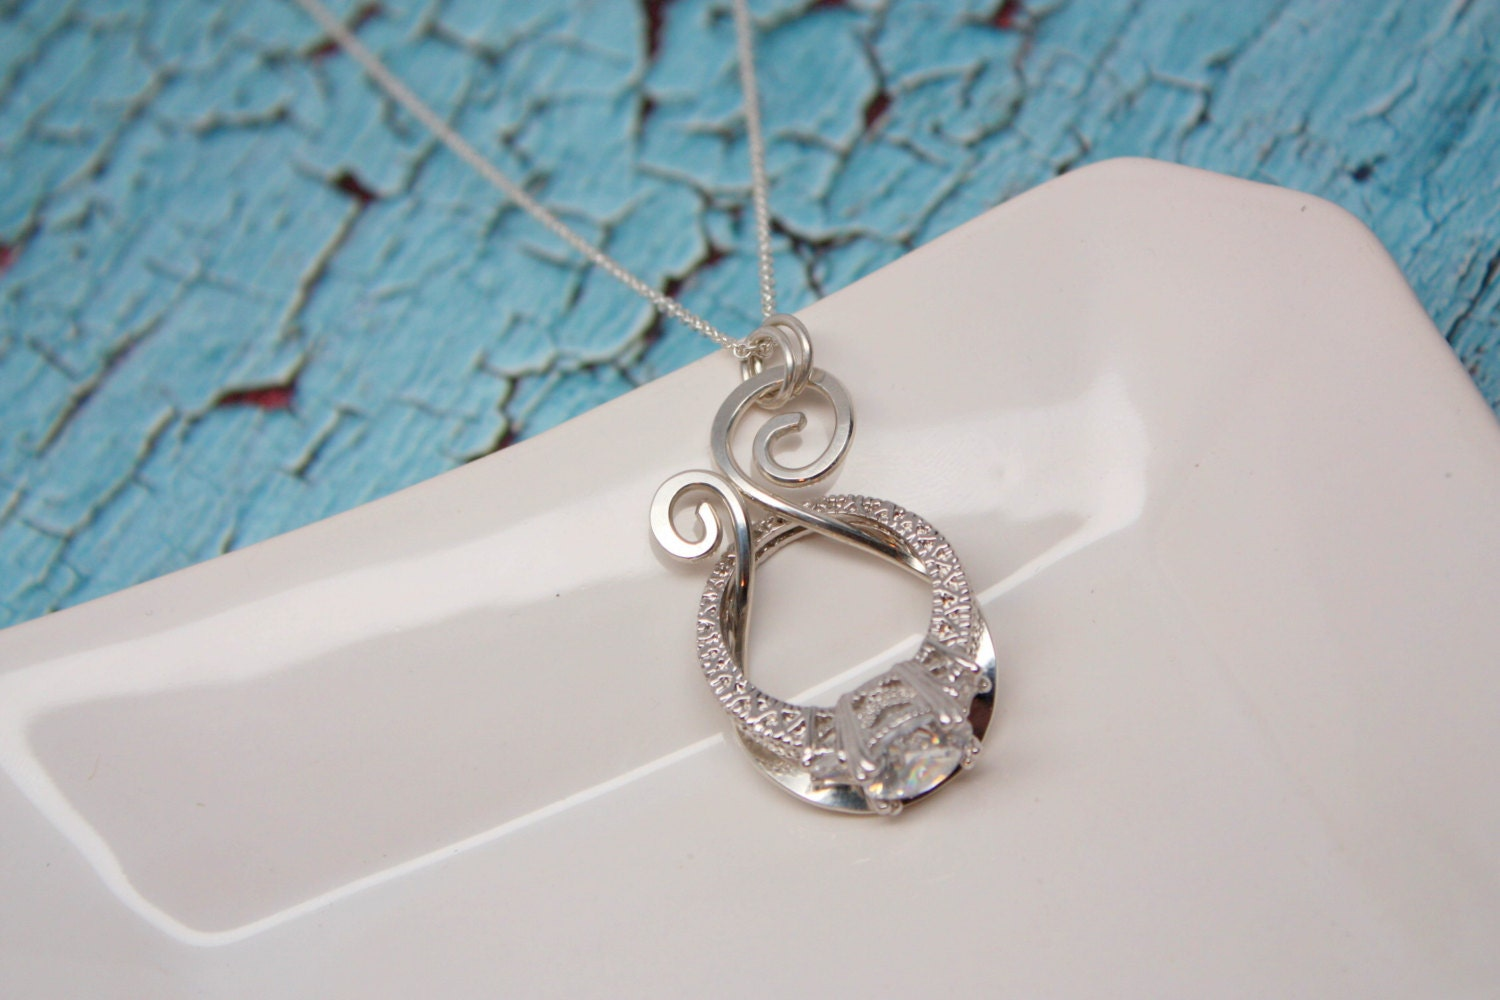 Magic ring holder necklace wedding engagement ring by for Wedding ring necklace